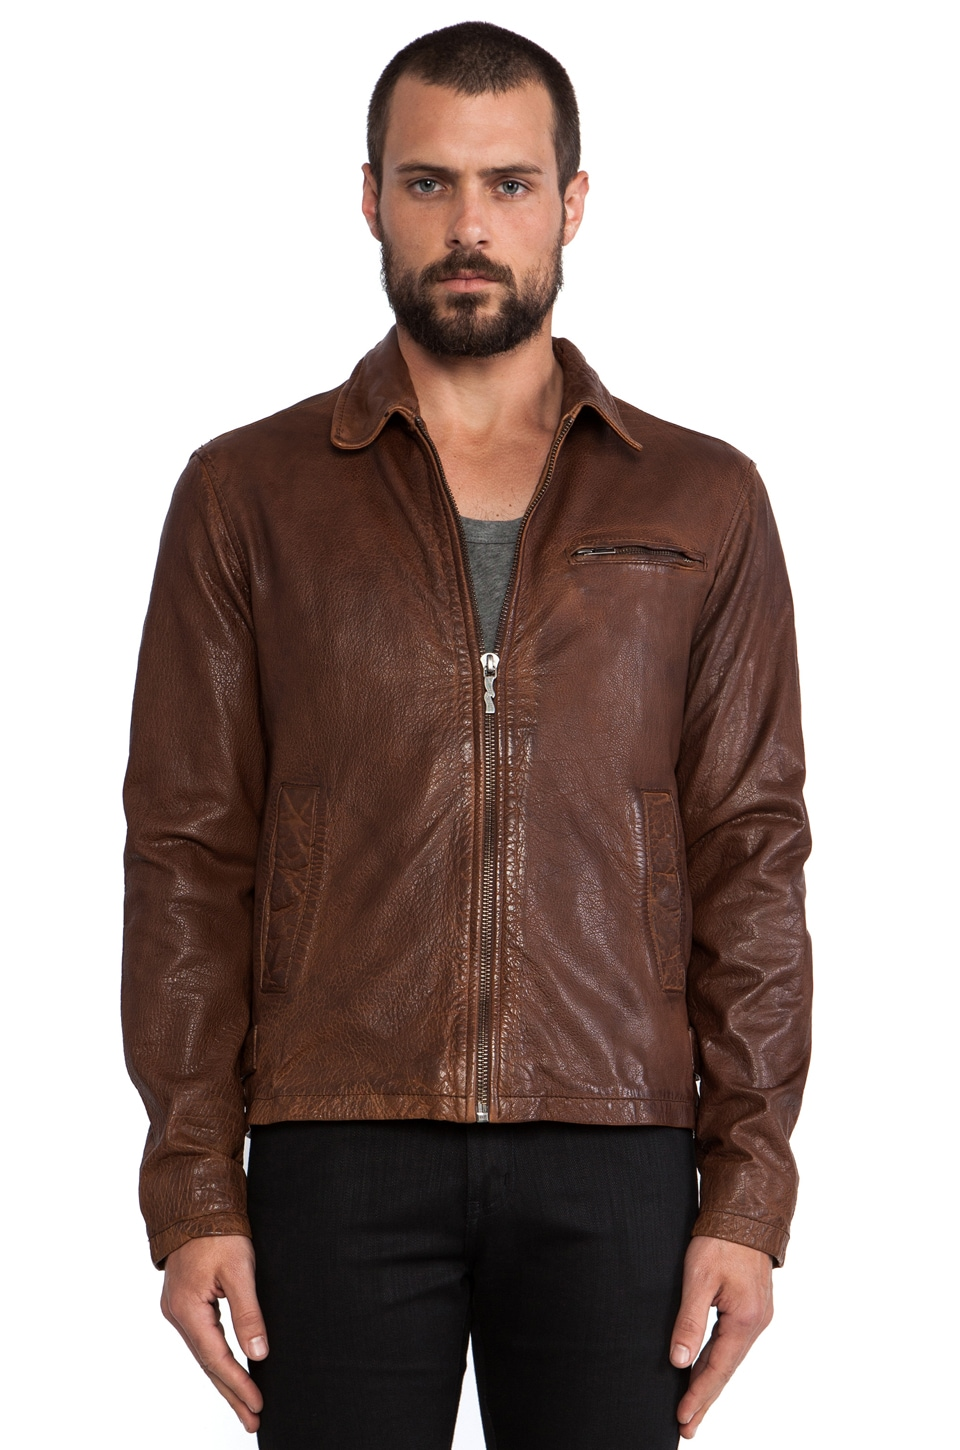 Nudie Jeans Ervin 50's Leather Jacket in Cognac